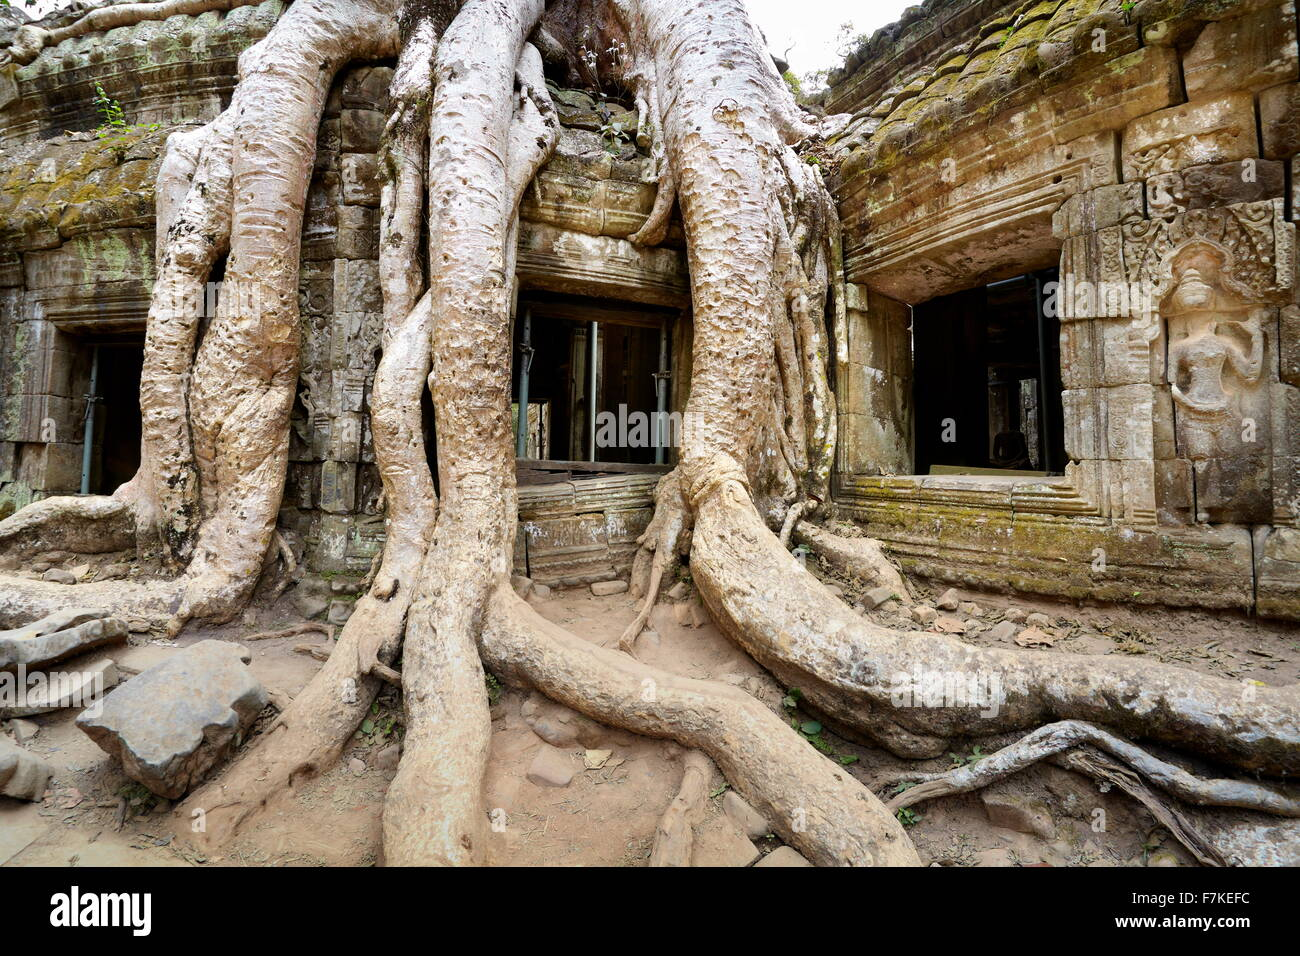 Roots of a giant tree overgrowing fragments of the Temple Ta Prohm, Angkor, Cambodia, Asia - Stock Image